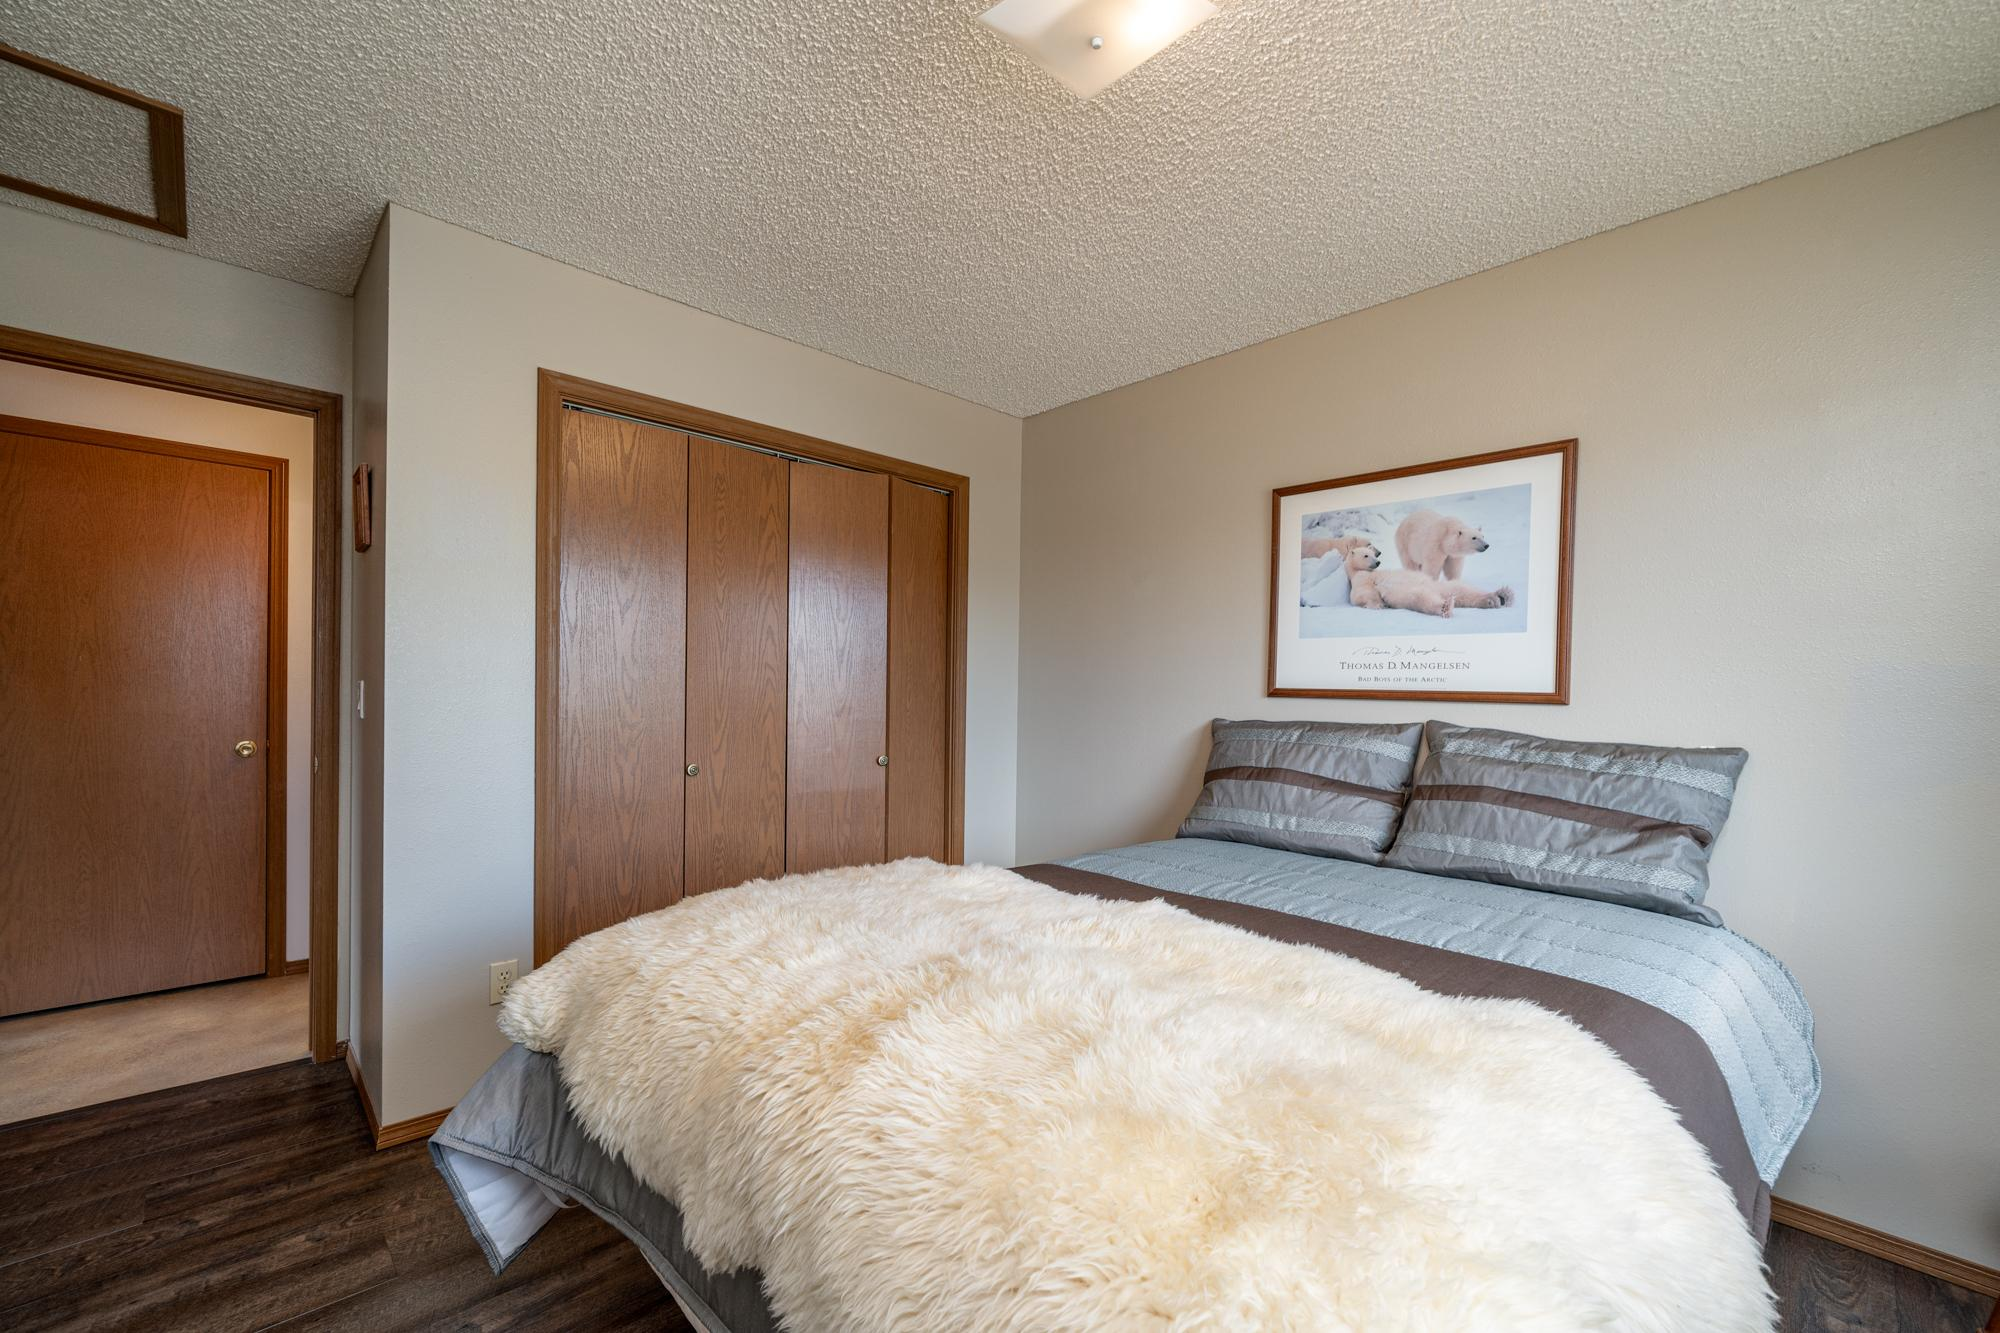 Bedroom with Closet Doors - 1311 Manchester Dr Montrose, CO 81401 - Atha Team Realty Agents